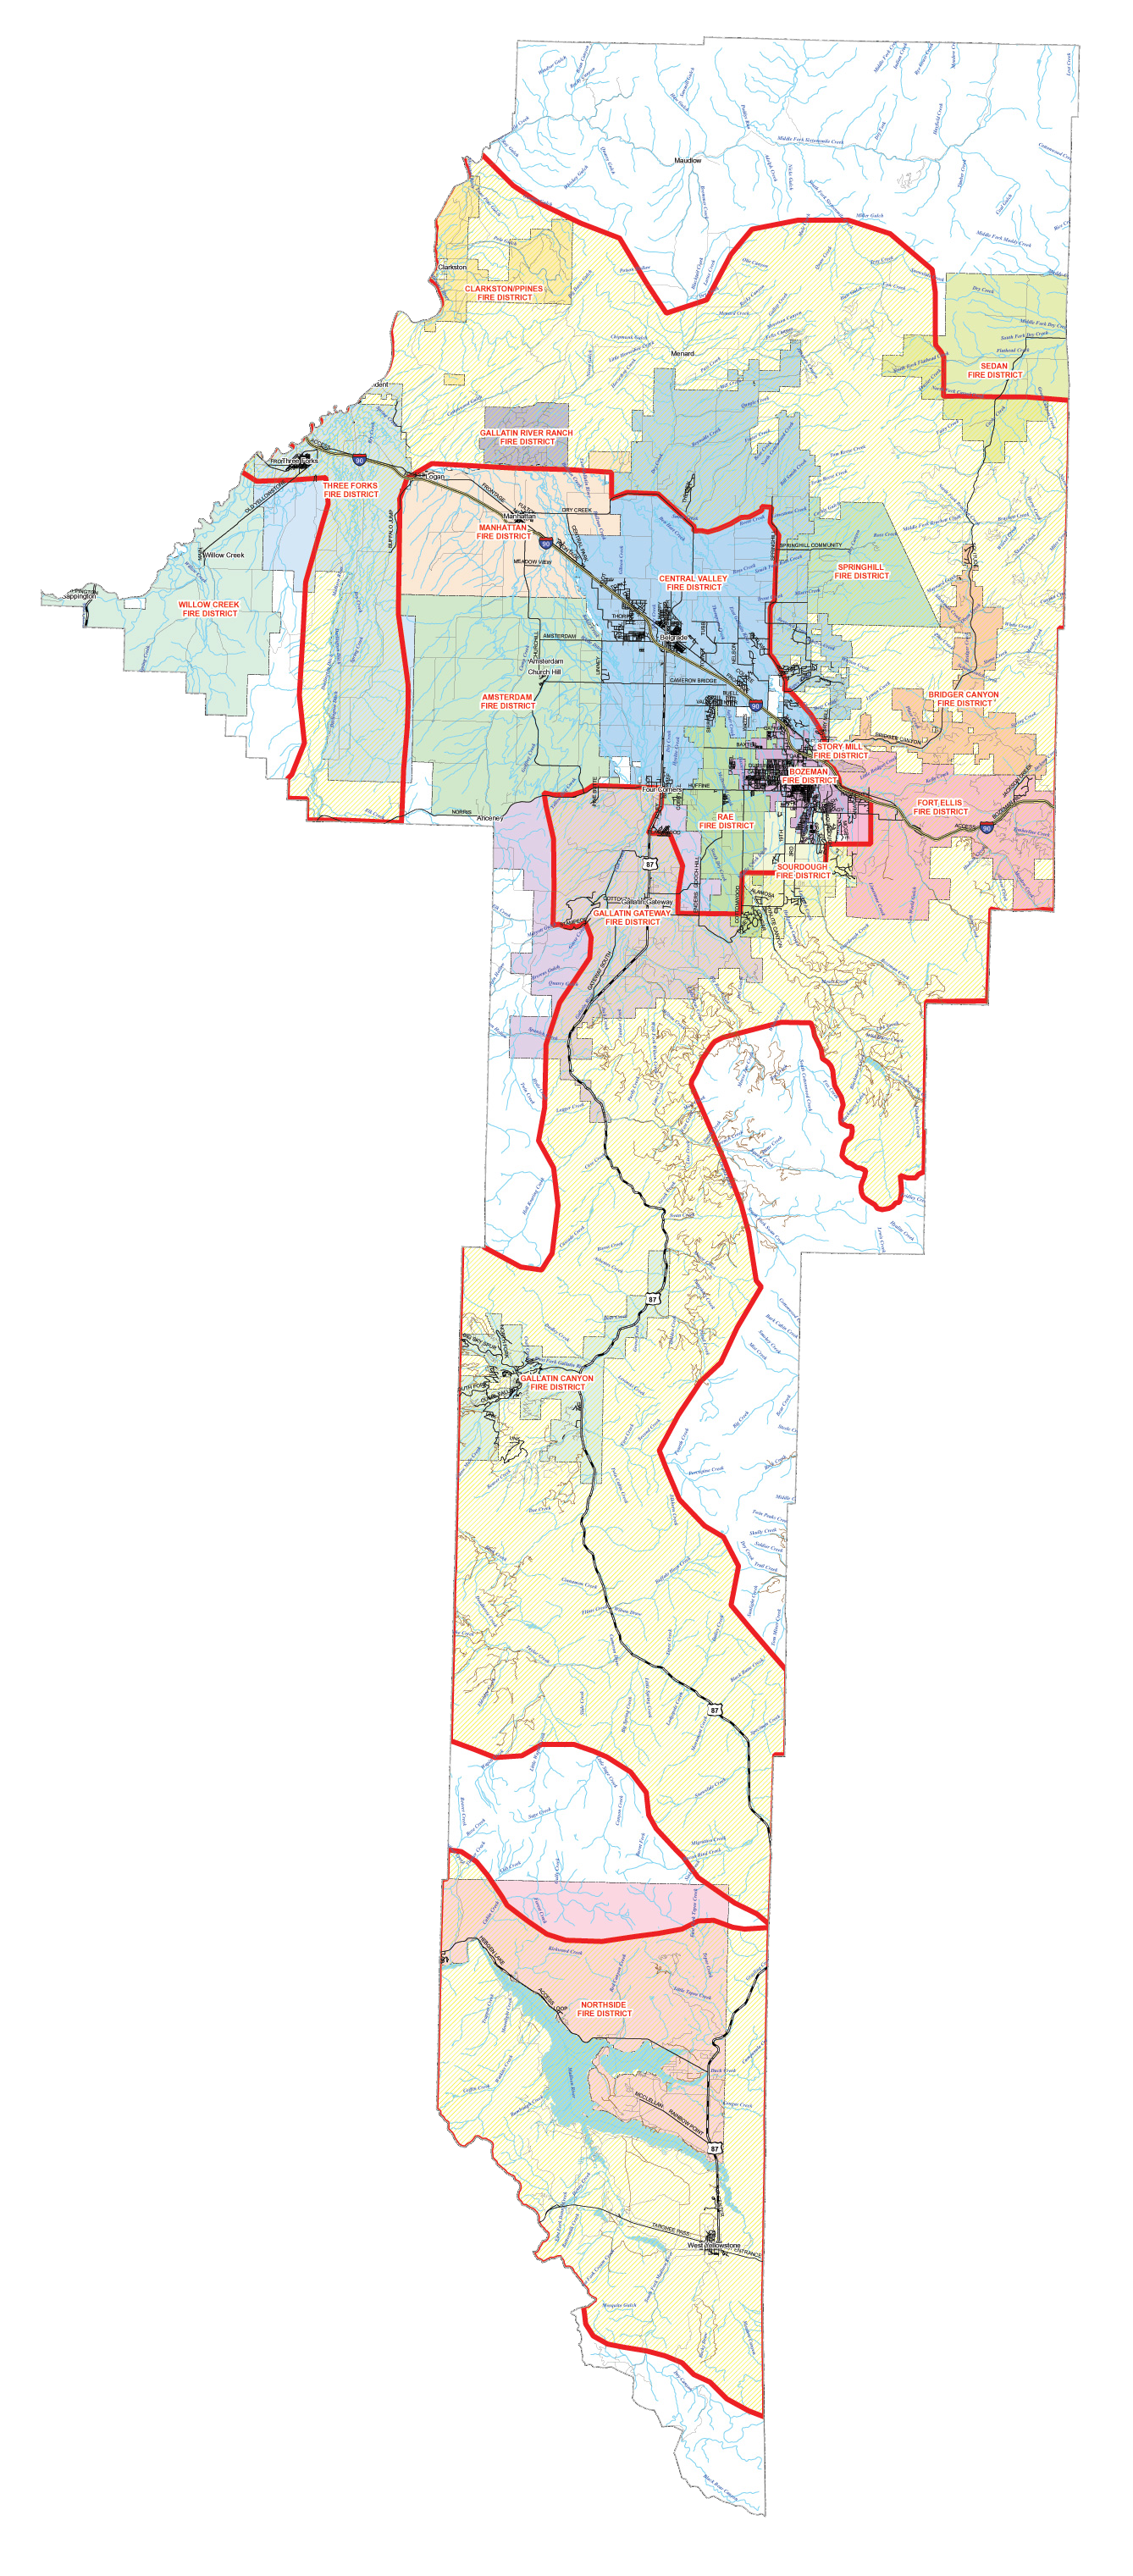 Montana Fire Map 2016.Wildfire In Gallatin County Gallatin County Emergency Management